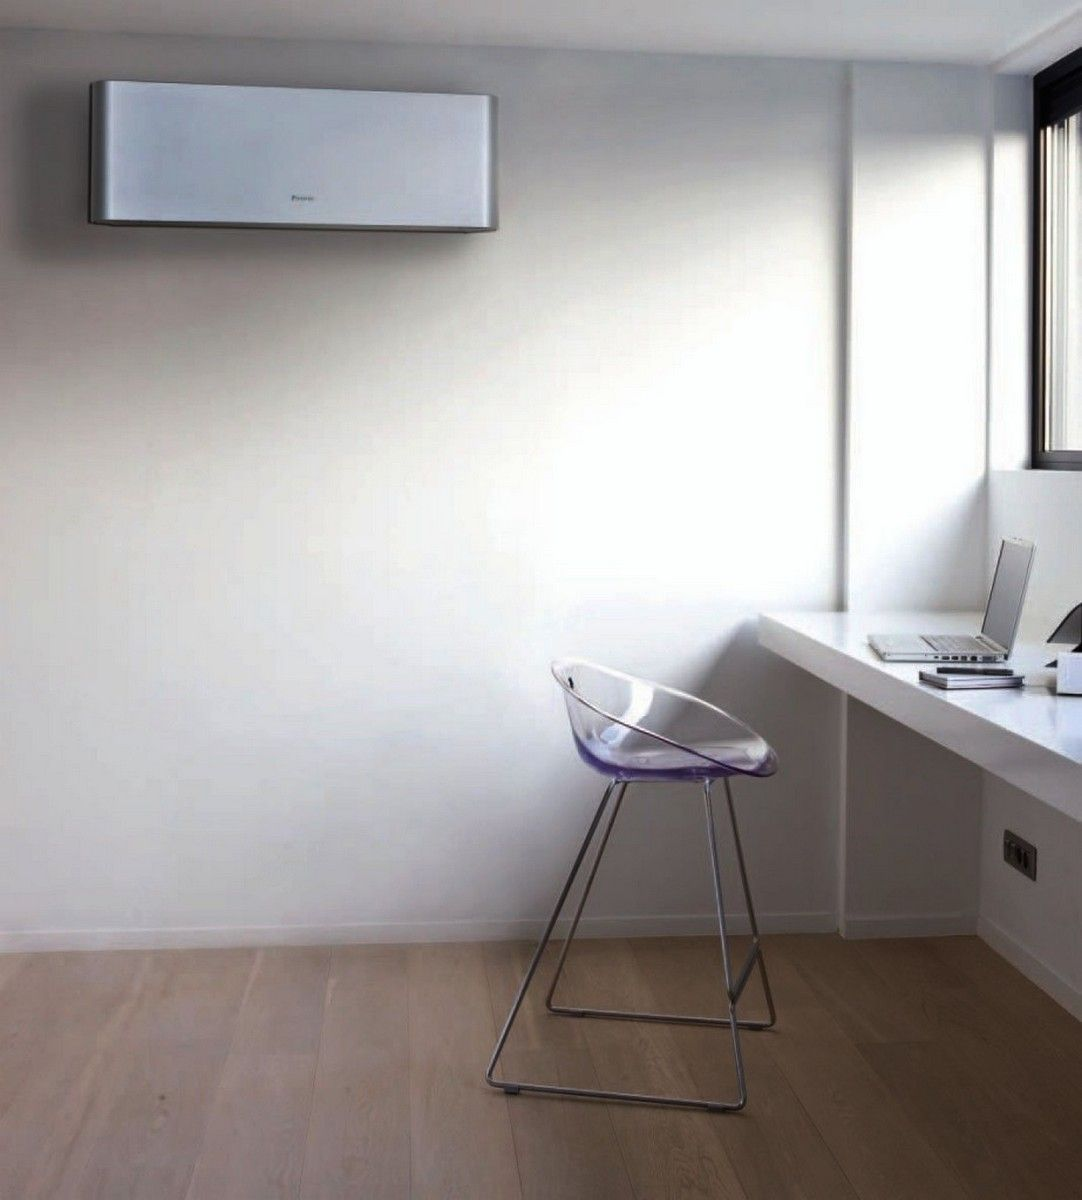 A Small Air Conditioner For Room On The Wall Dom Kondicioner